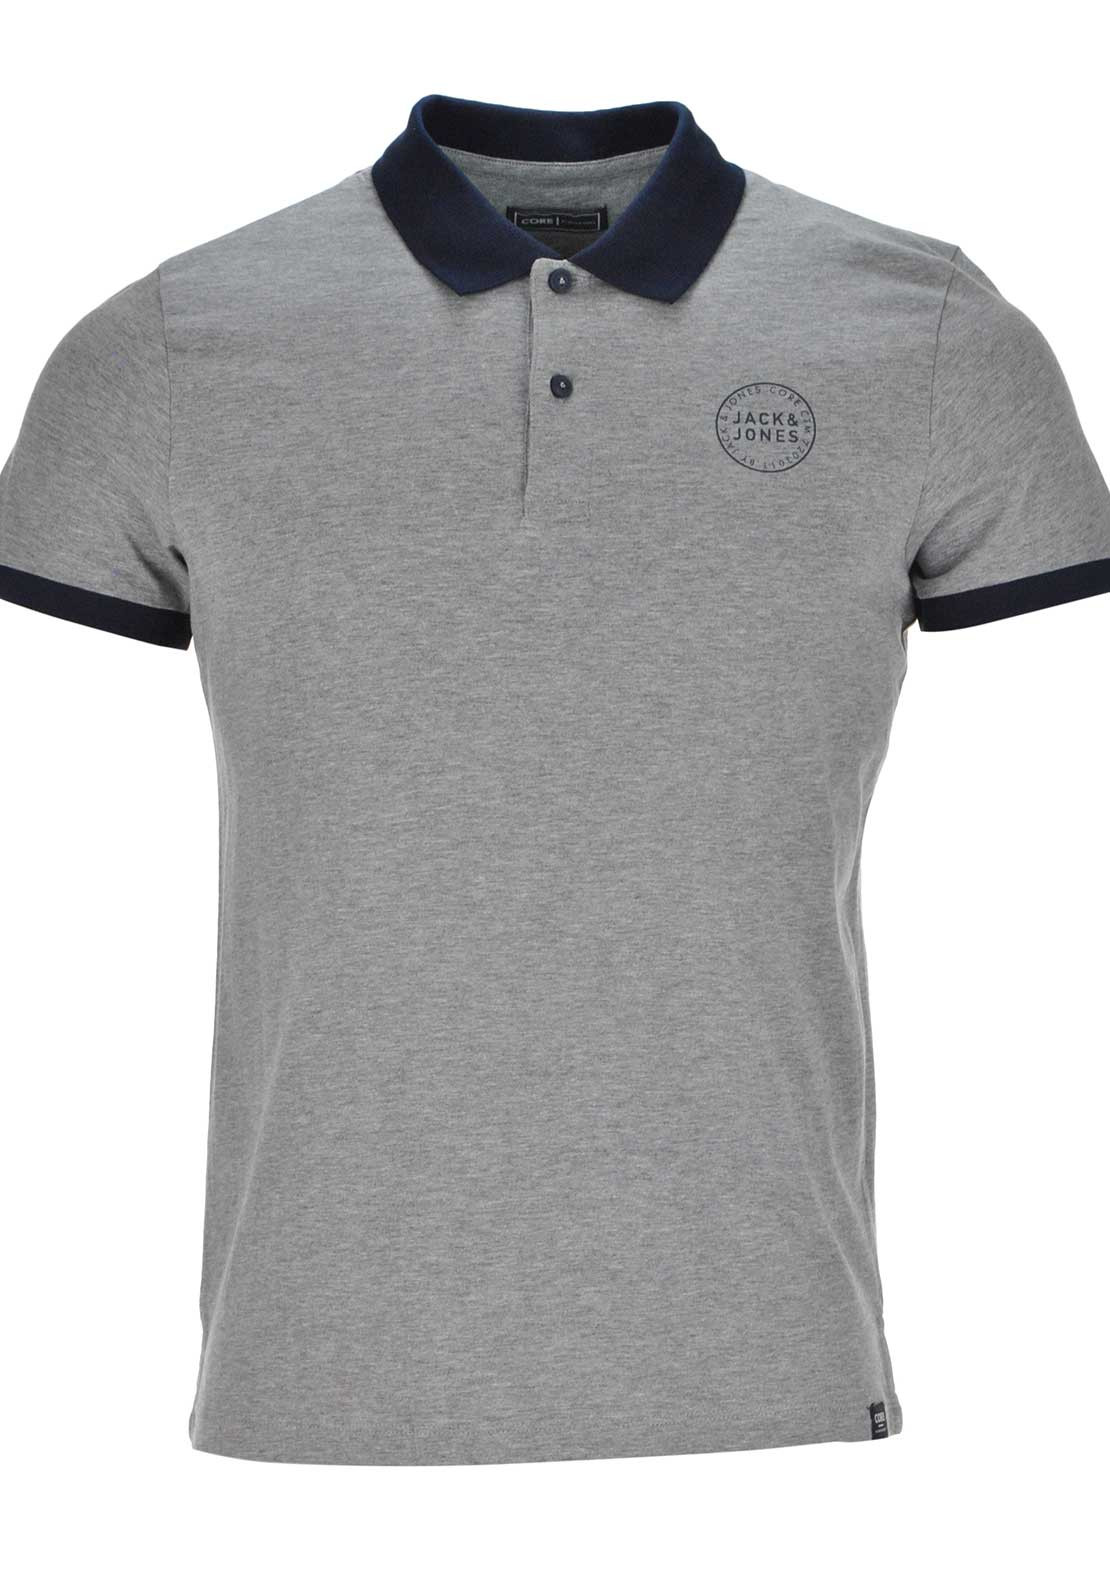 Jack & Jones Core Sure Short Sleeve Polo Shirt, Grey Melange